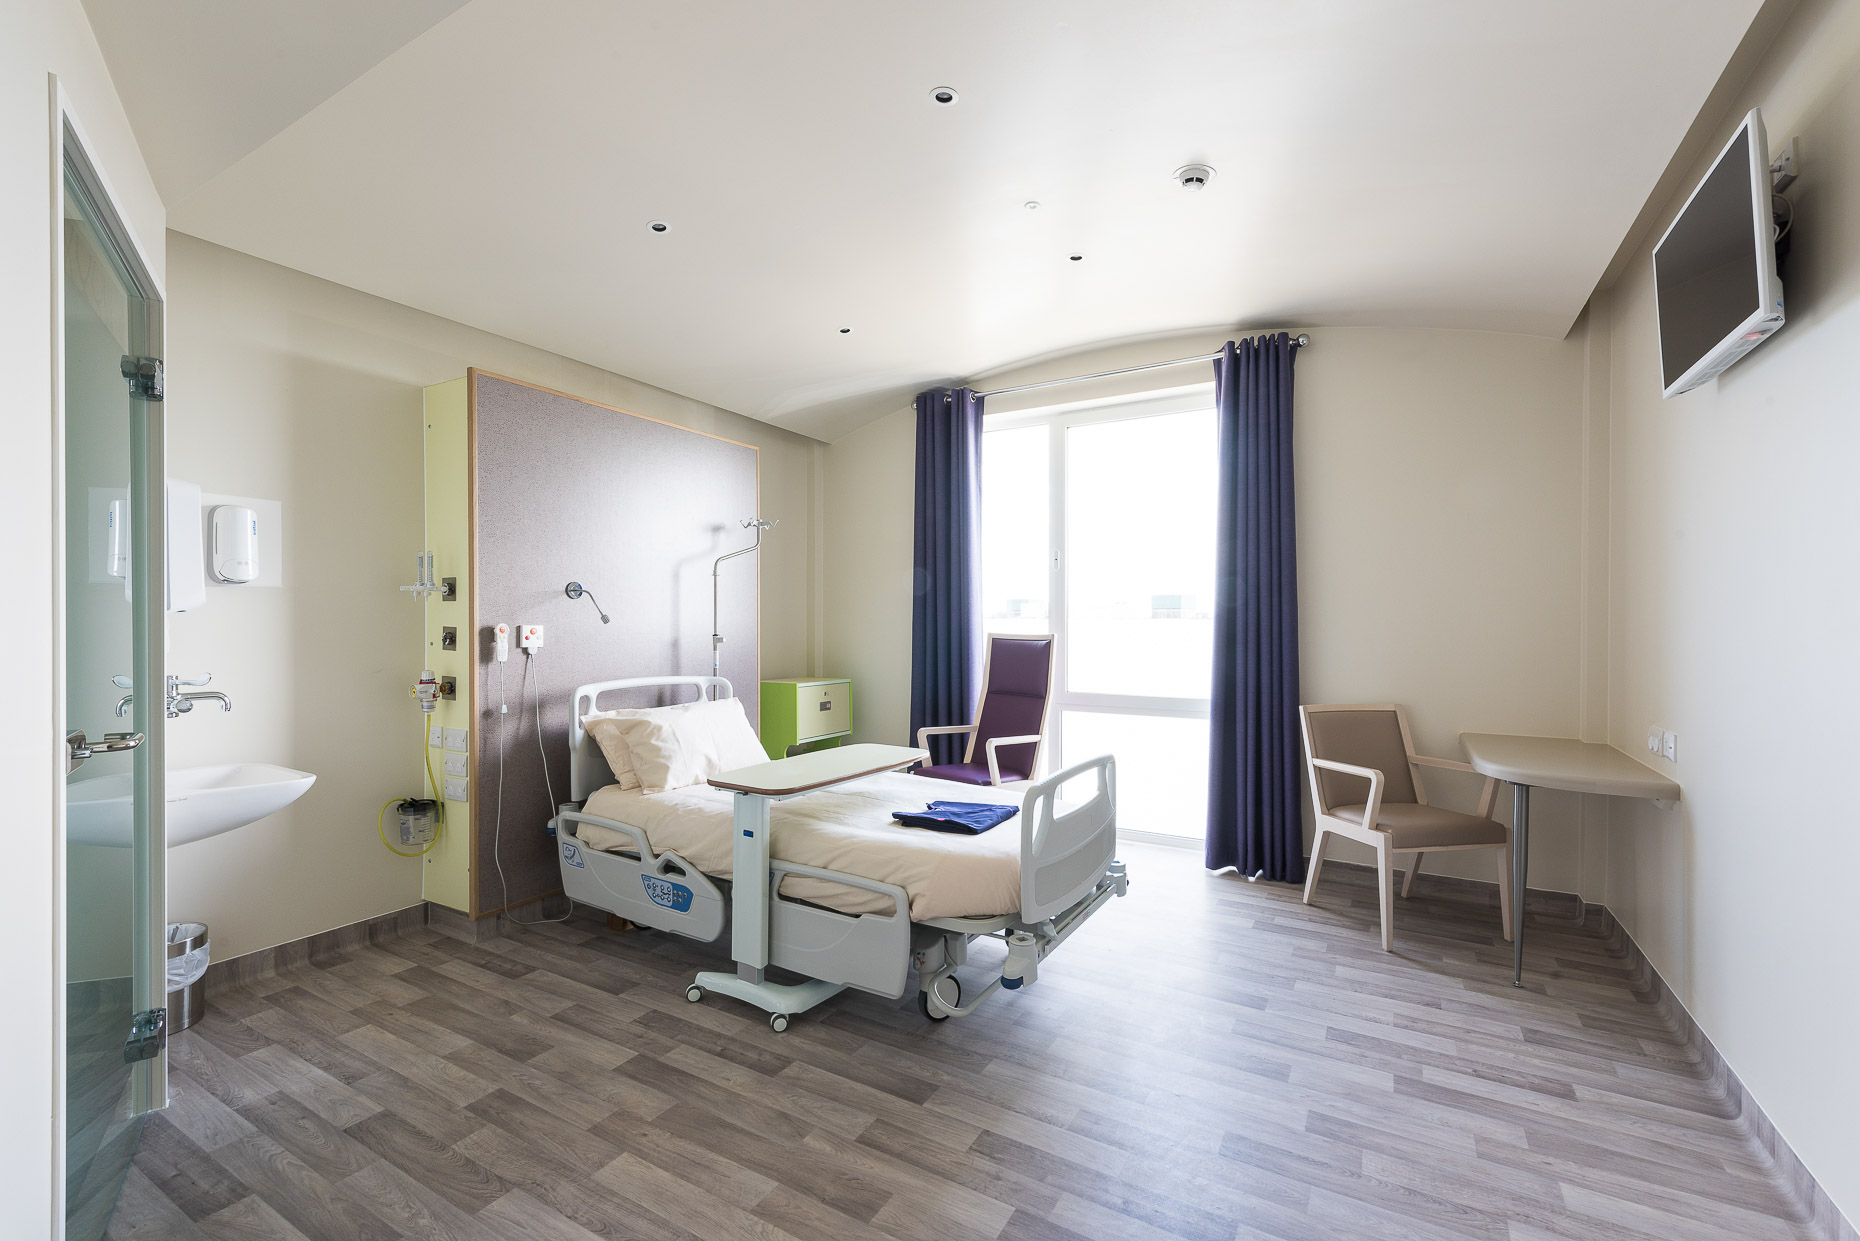 interior-ashford-hospital-kent-lobby-patient-room-property-29